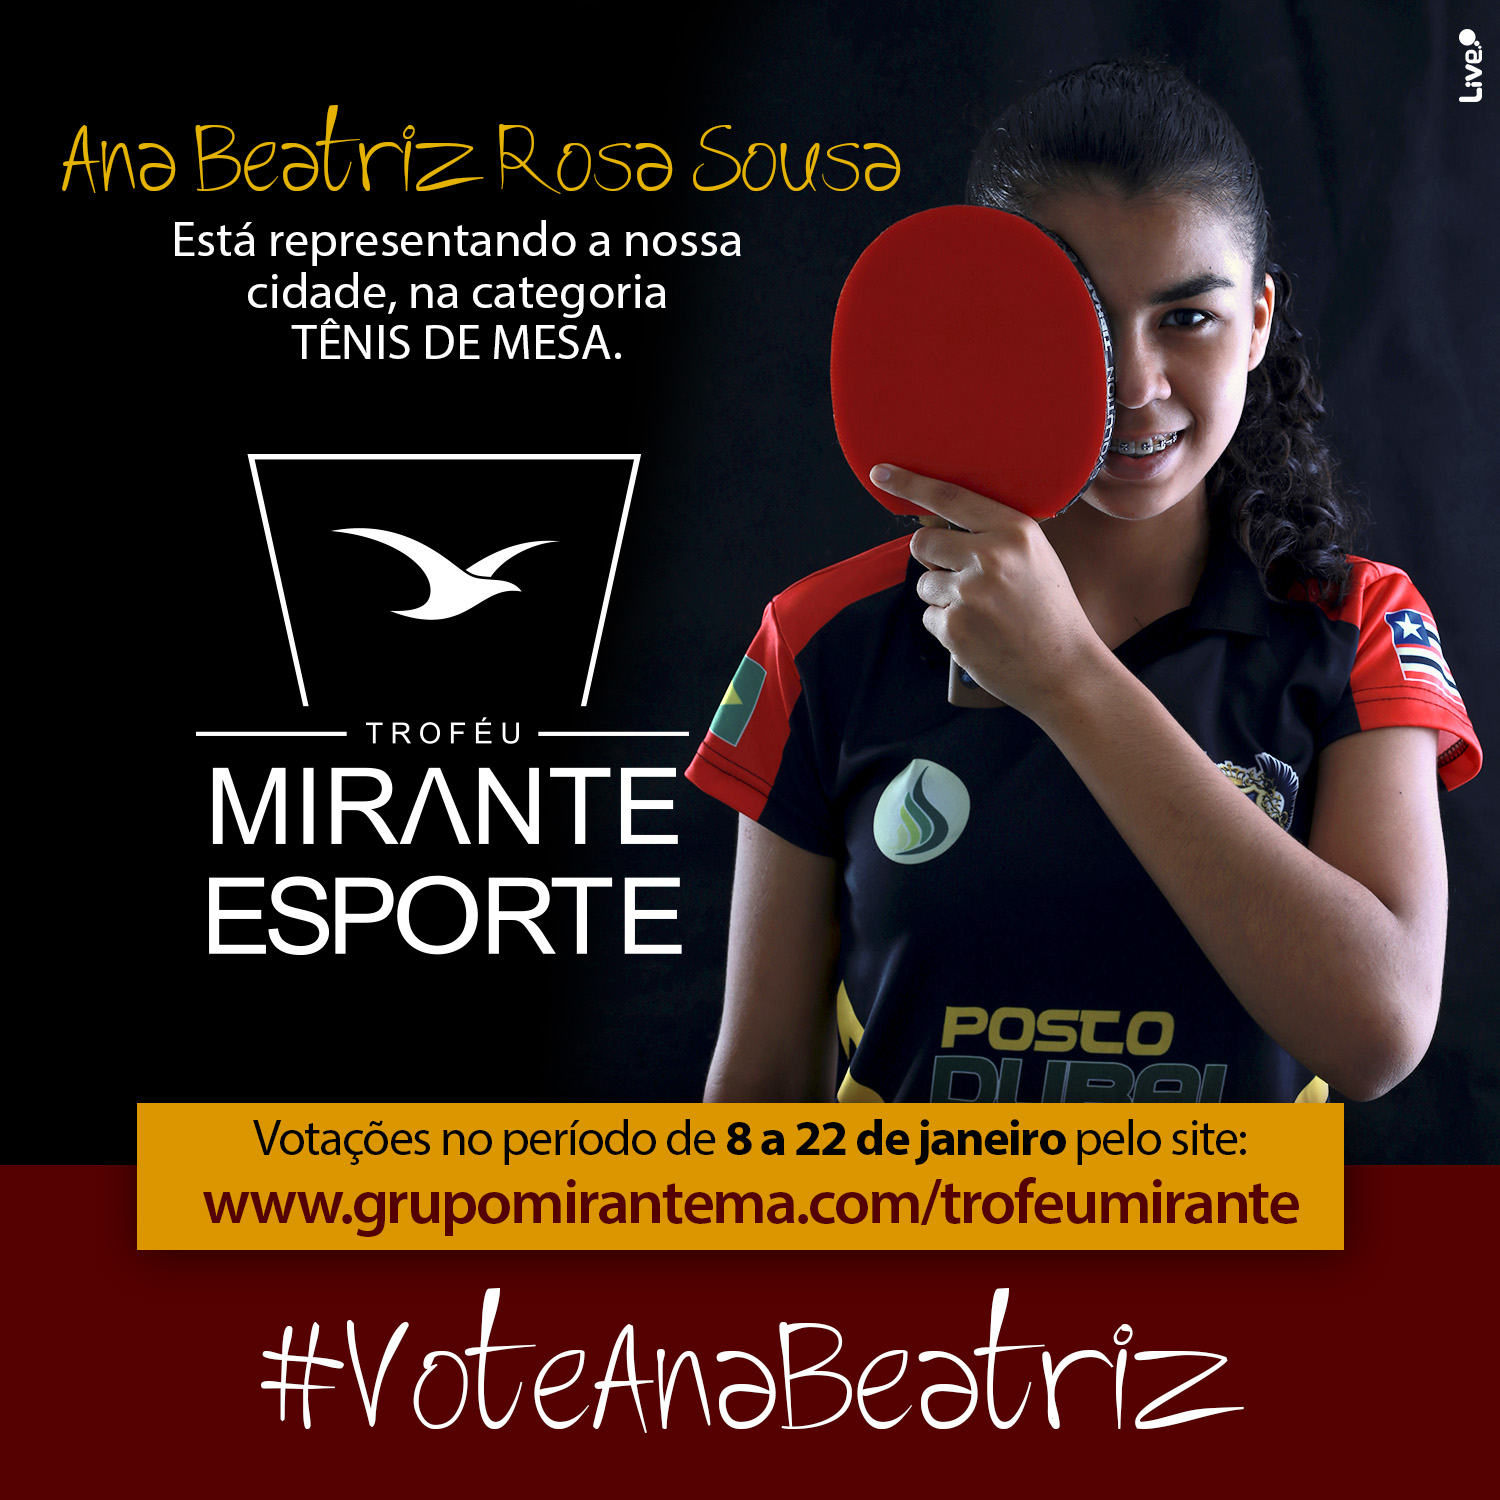 Vote Ana Beatriz